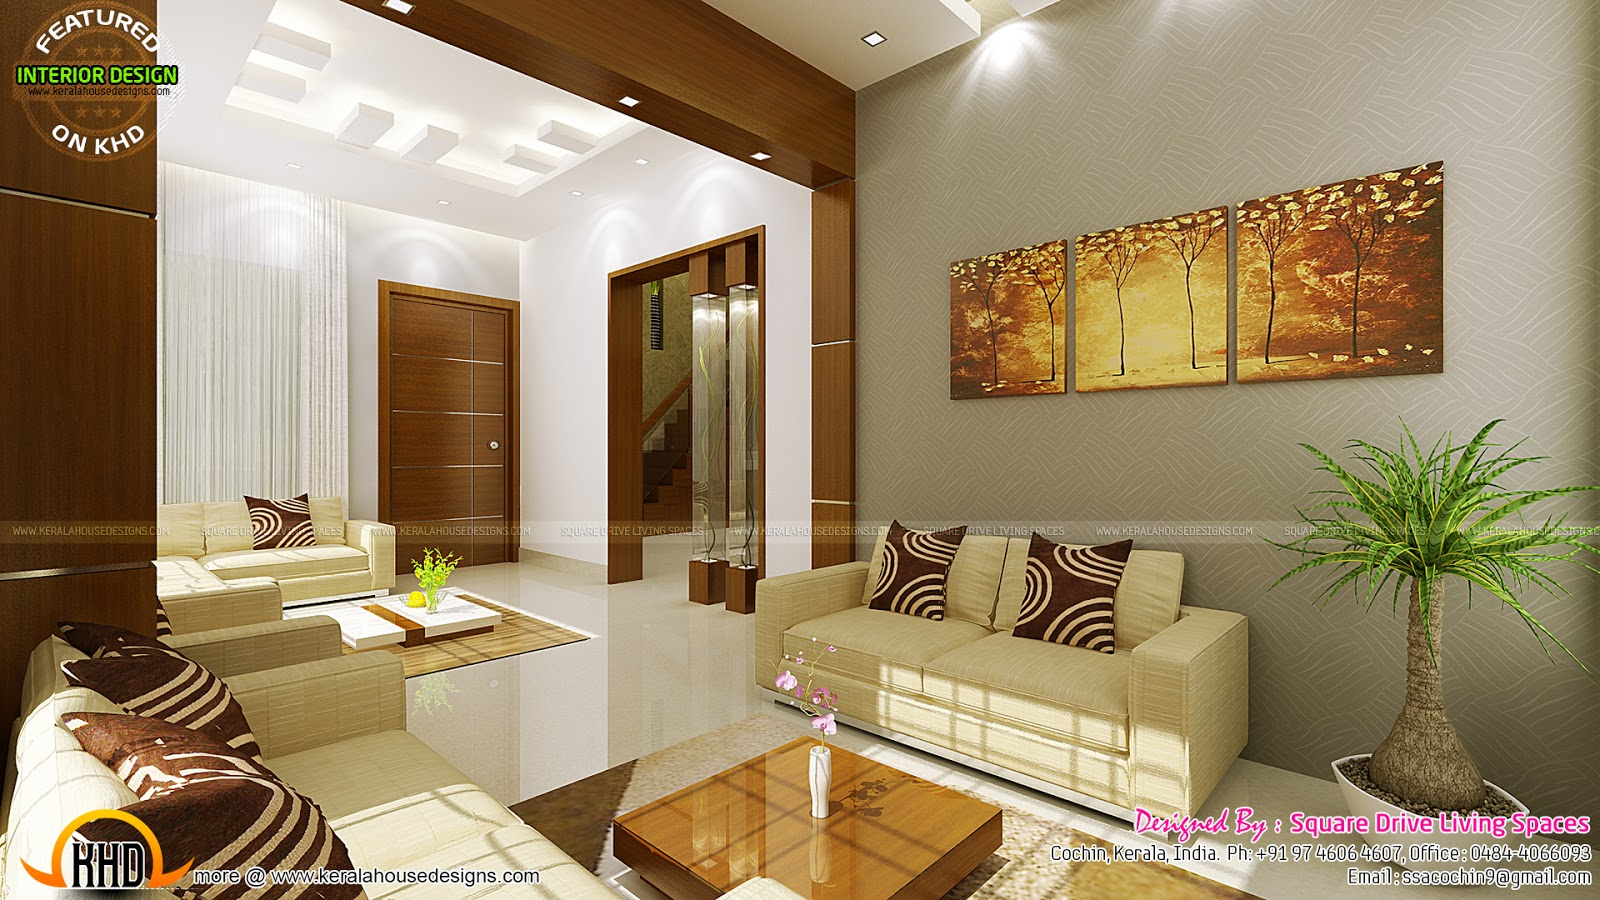 Contemporary kitchen dining and living room kerala home for Home interior ideas